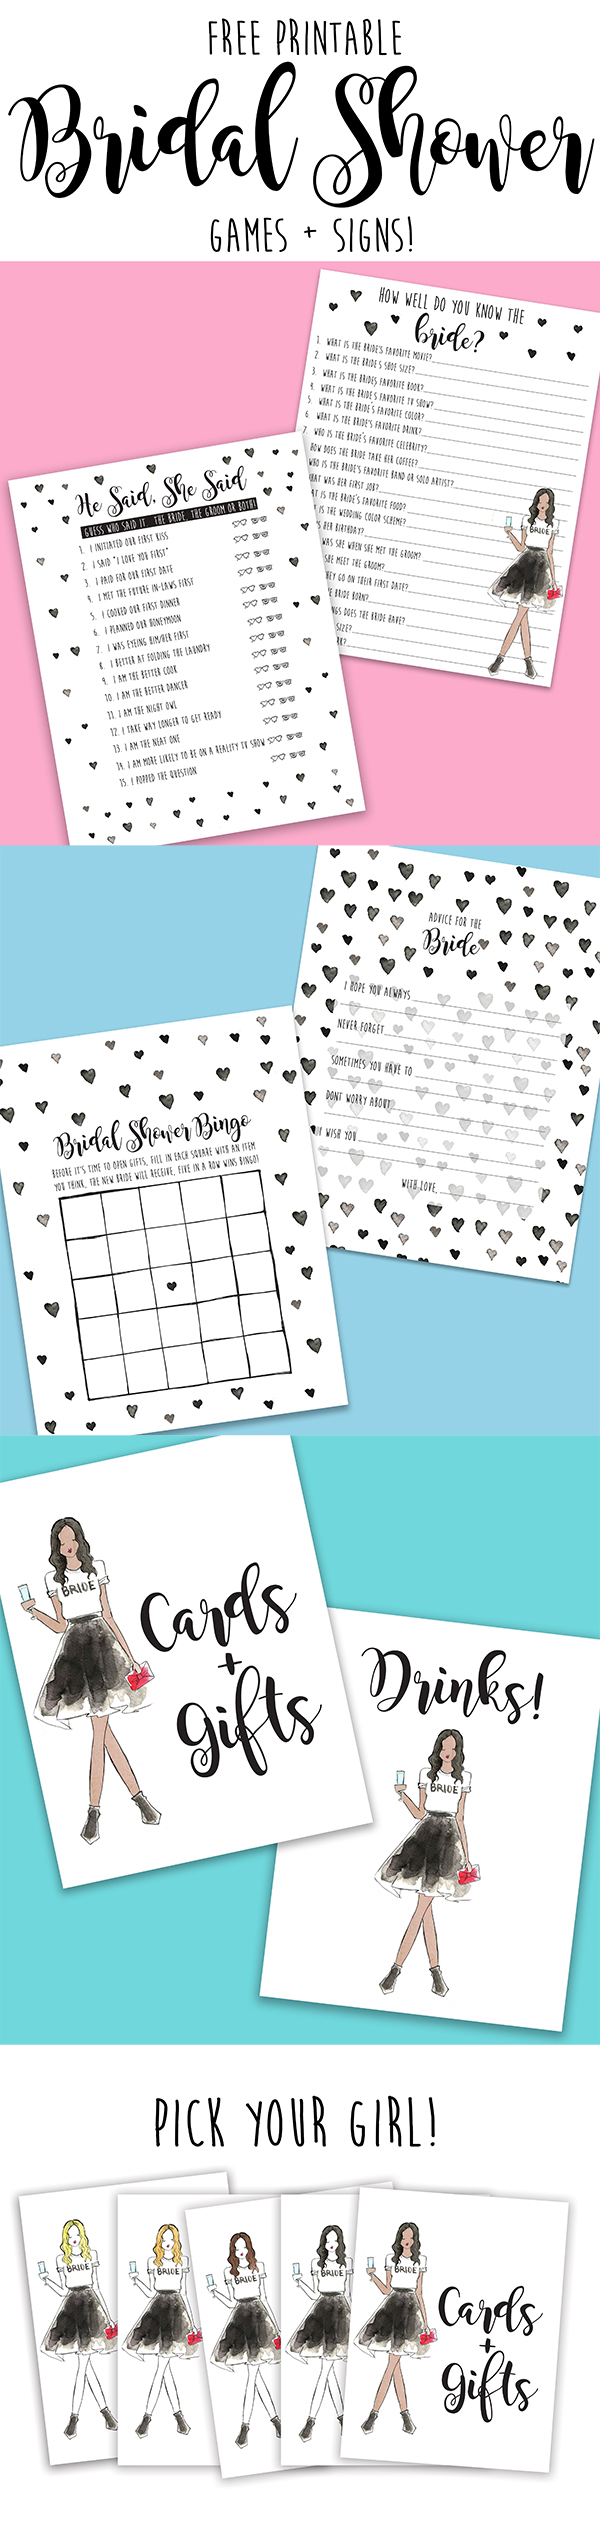 free printable bridal shower games signs